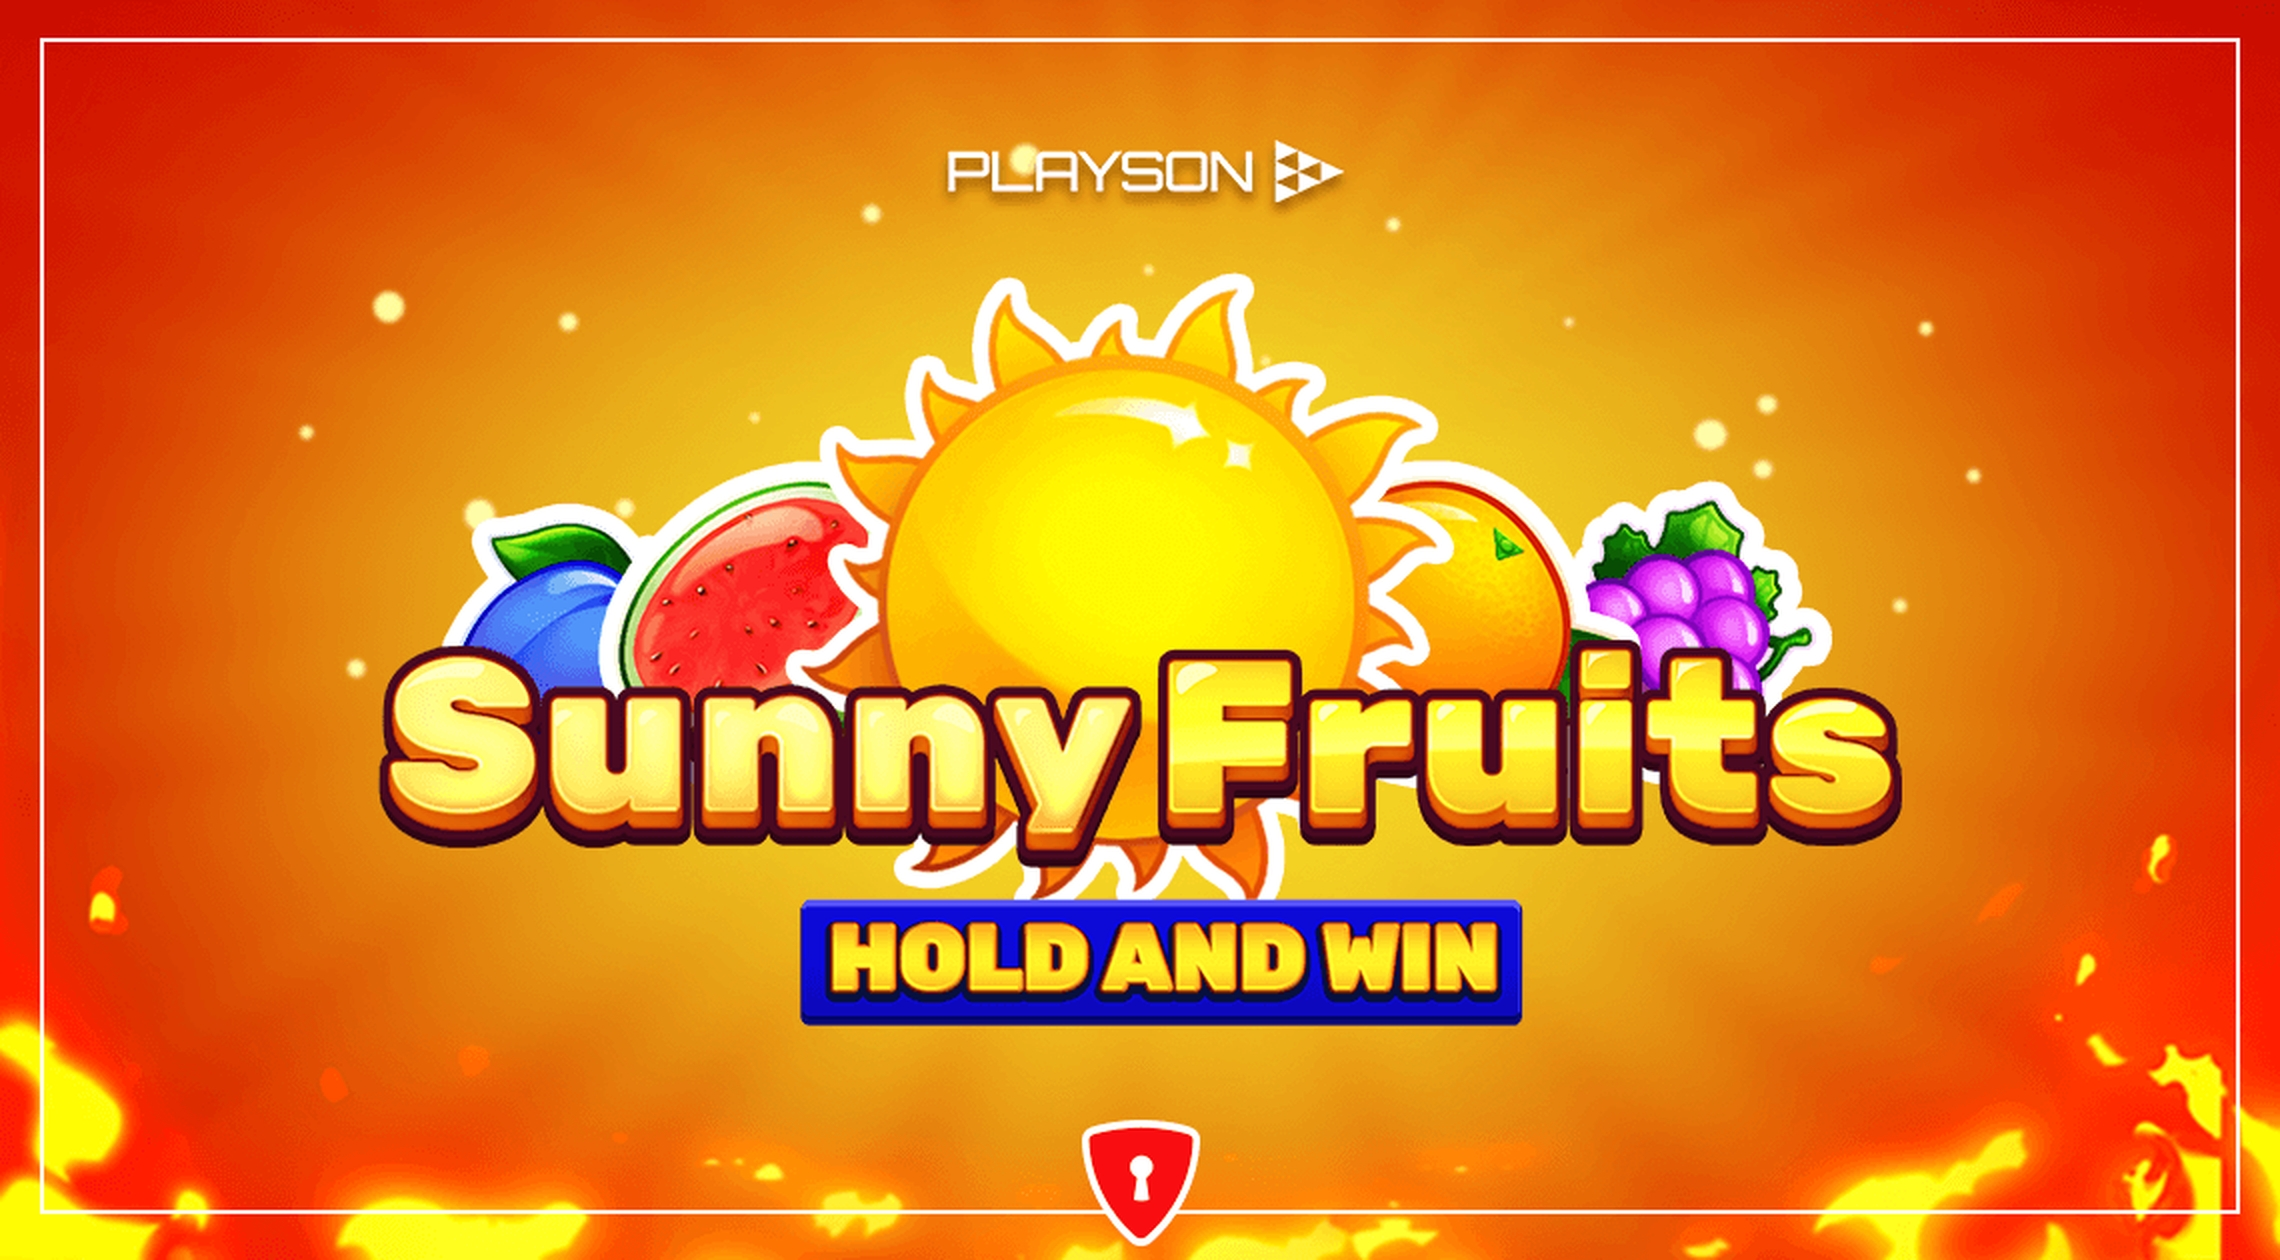 The Sunny Fruits: Hold and Win Online Slot Demo Game by Playson